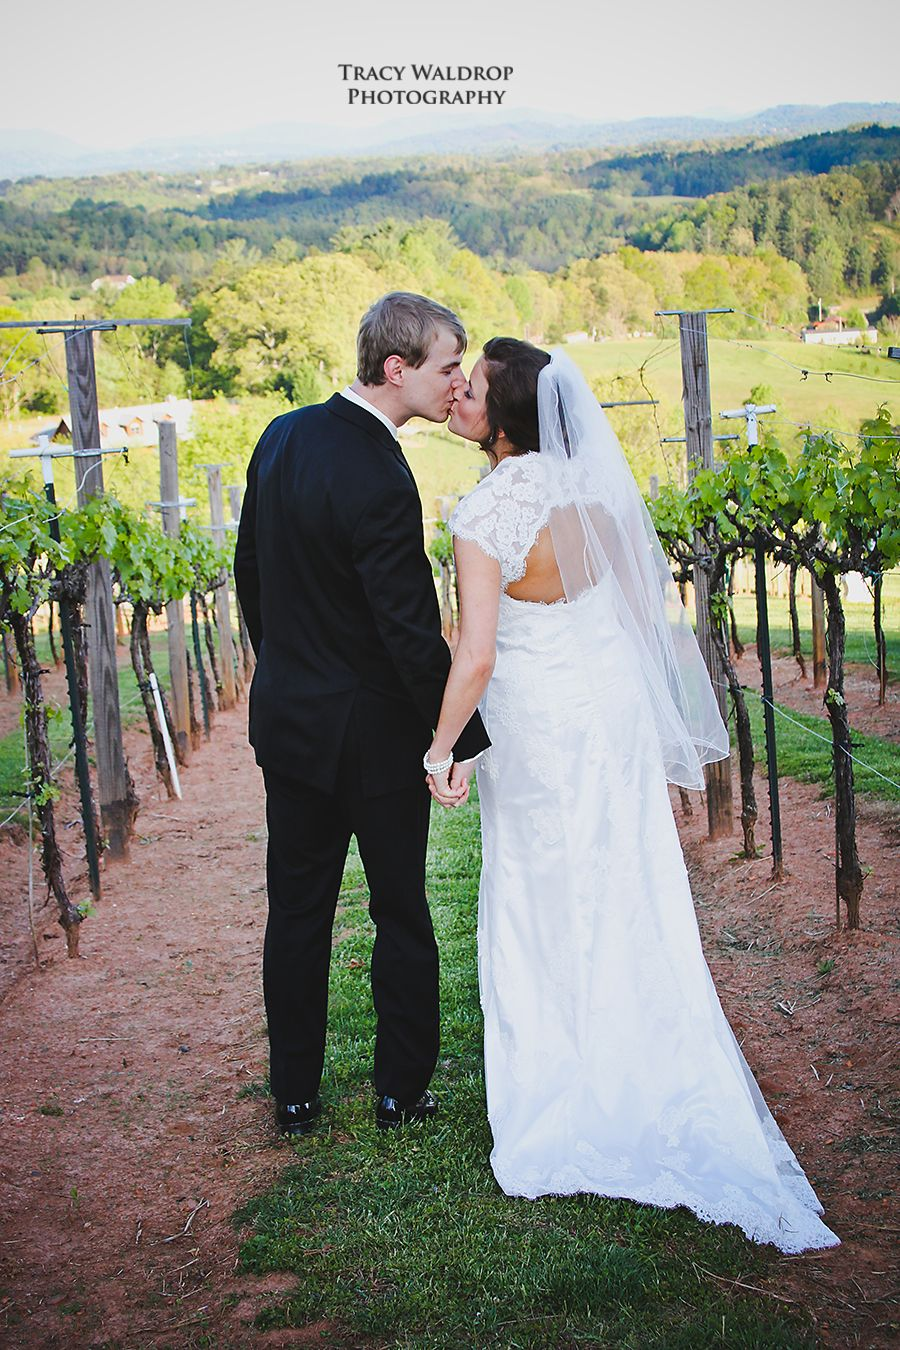 Pin by Tracy Waldrop Photography on TWP Weddings